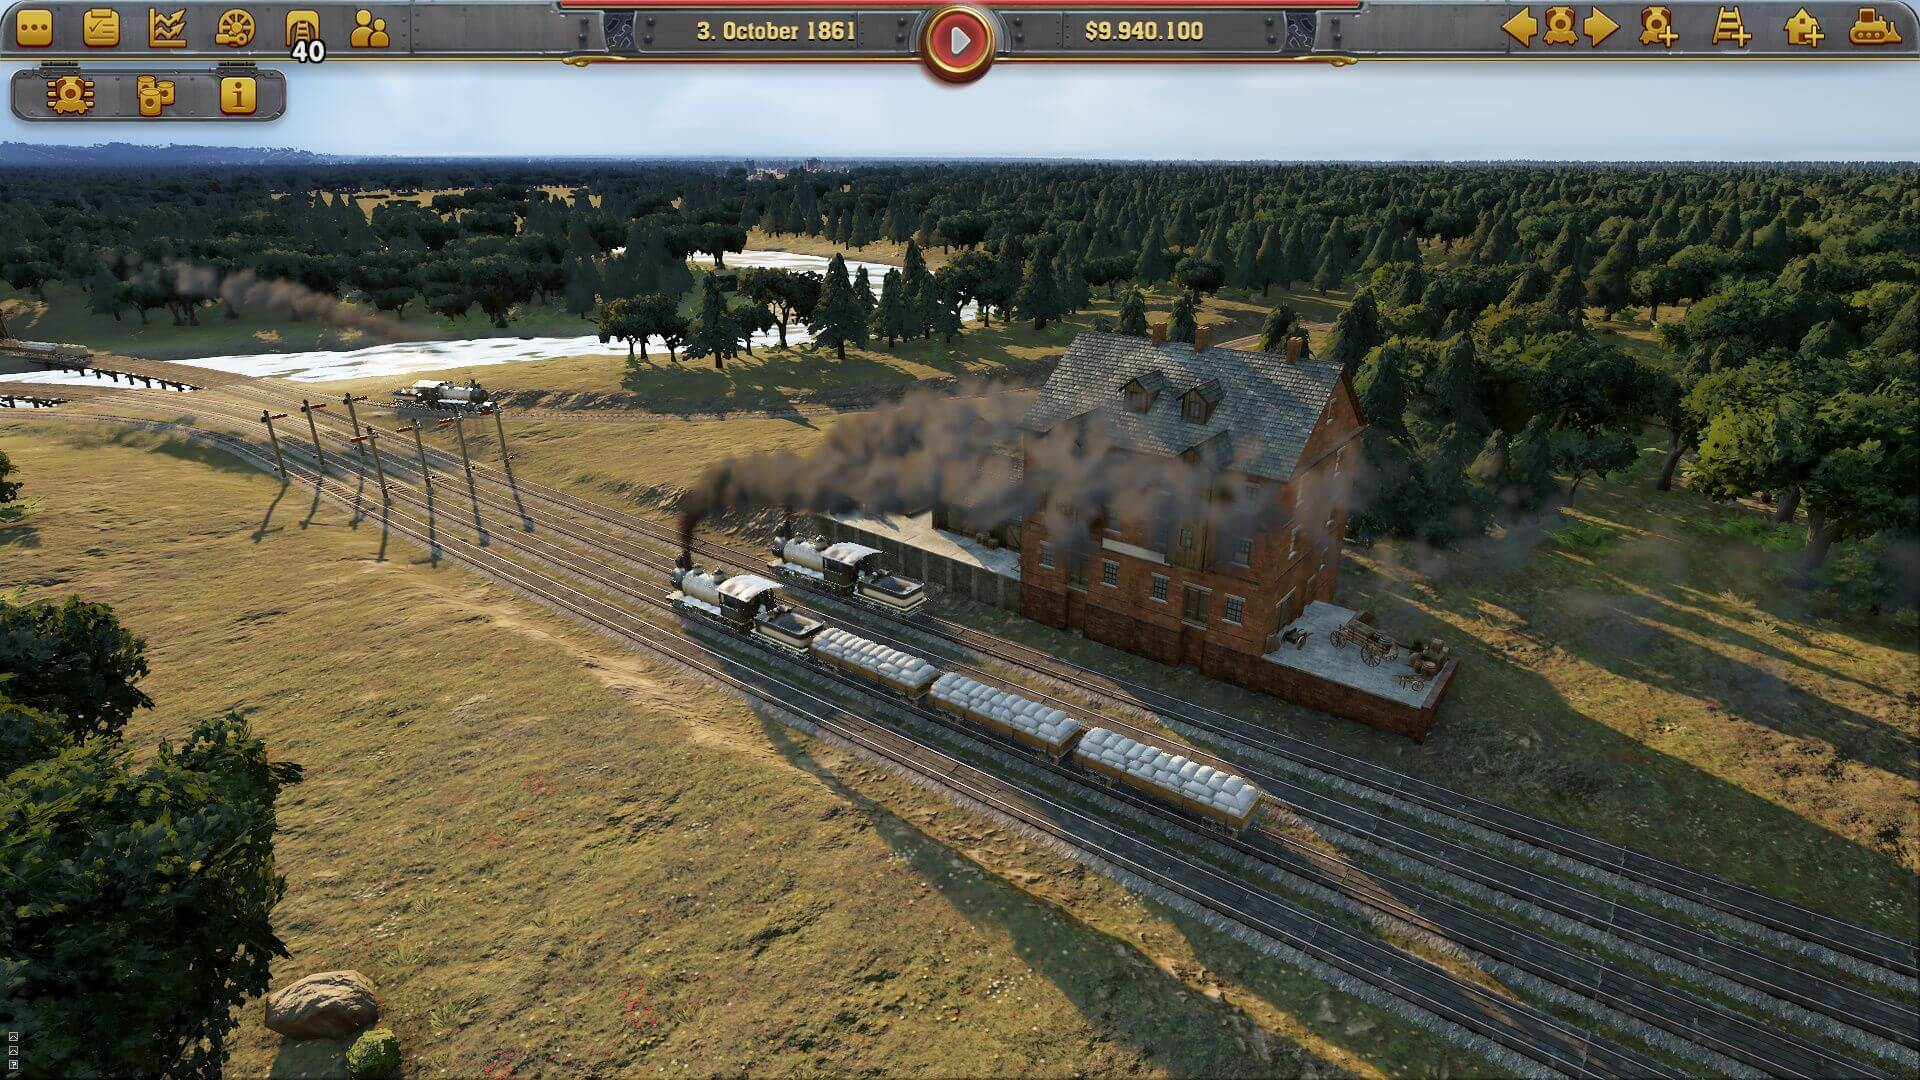 Railway Empire pc ps4 pro xbox one x steam gog 13